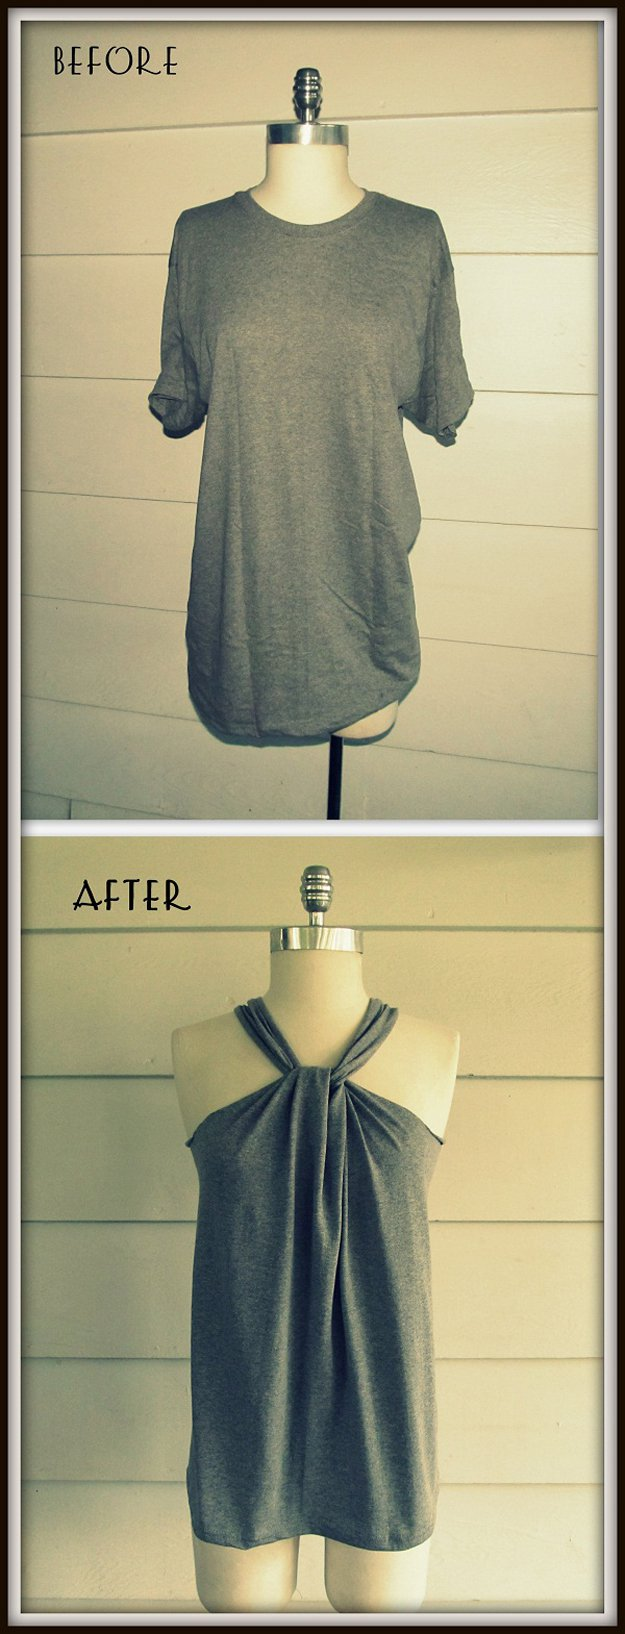 Easy Haltered DIY Top Design | diyprojects.com/diy-clothes-sewing-blouses-tutorial/